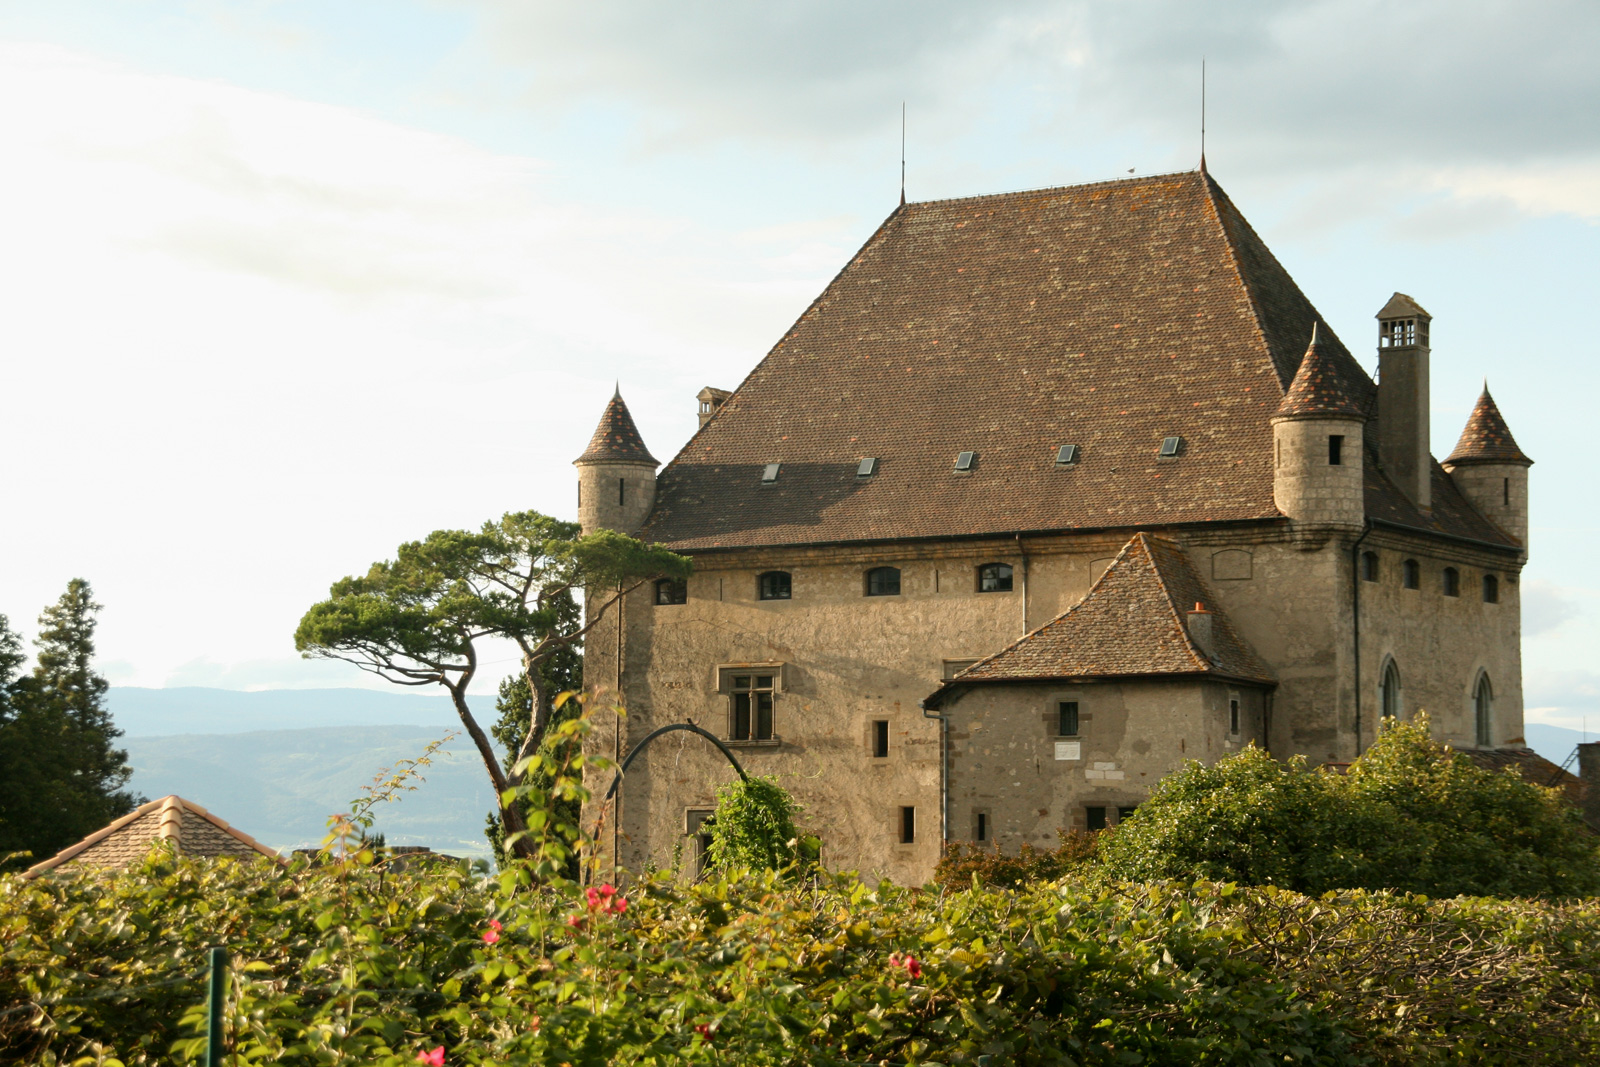 Yvoire castle and the Garden of Five Senses